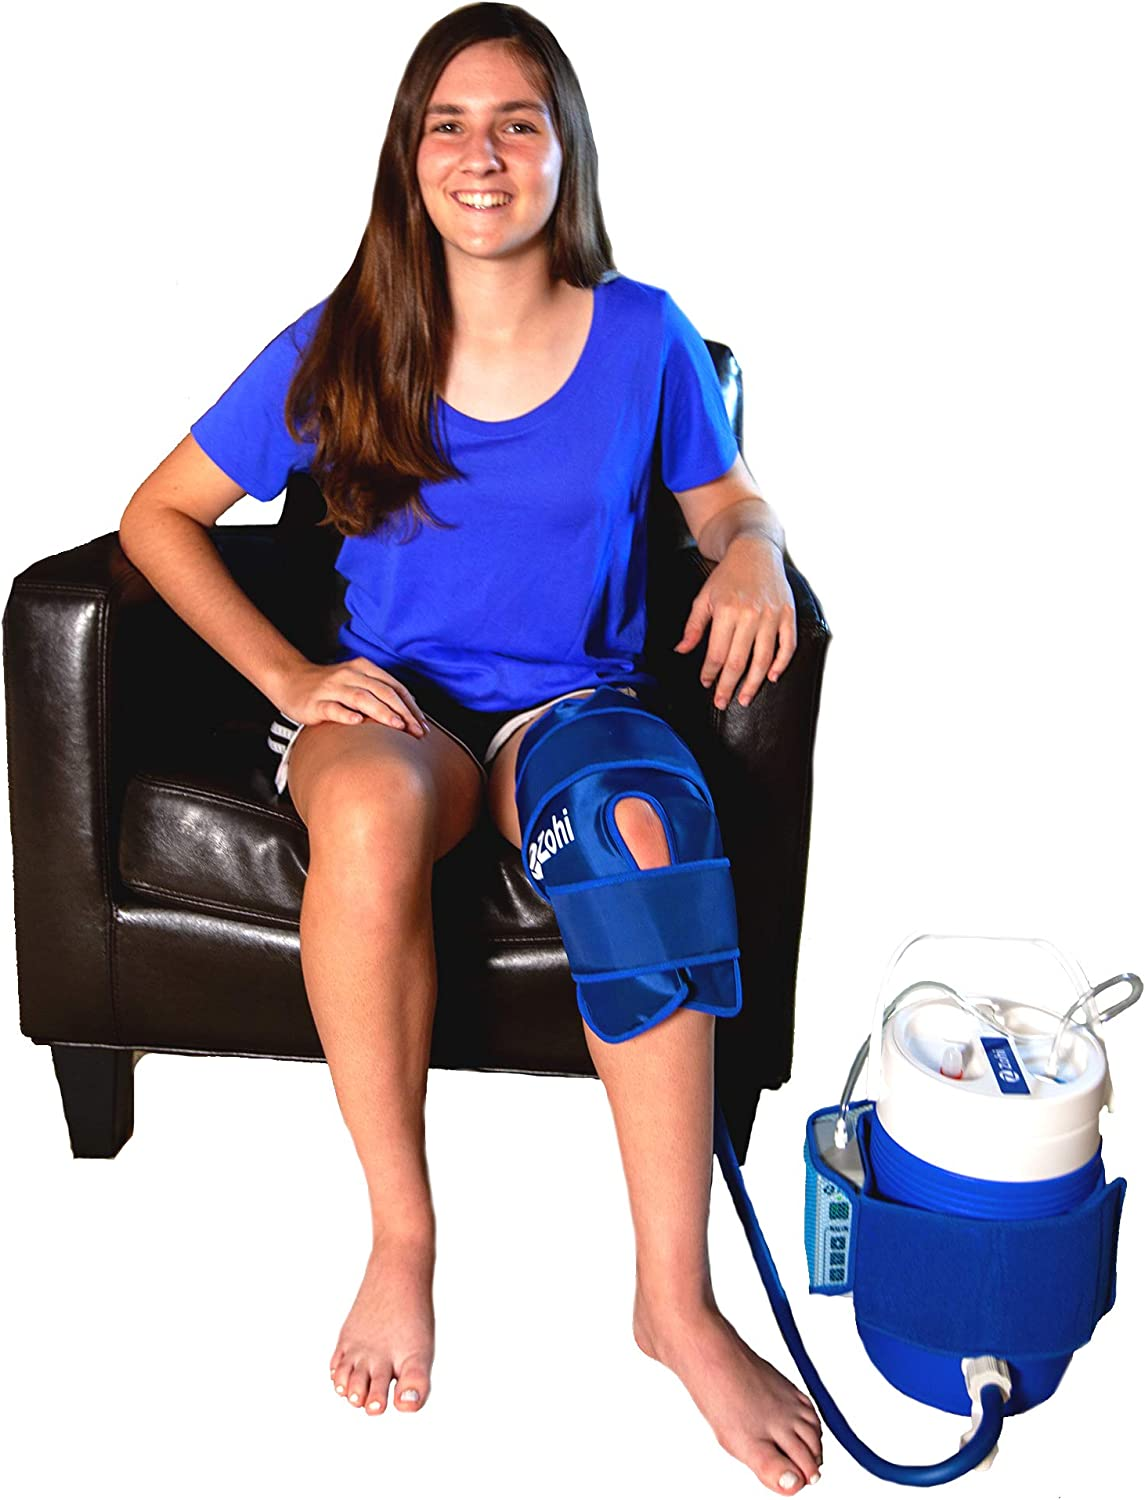 Cryo Knee Care | Cold Therapy System Motorized | Zohi Advanced Motorized Home Therapy System with Continuous CryoTherapy Circulation | Cooler Provides Hours of CryoTherapy | Adjustable Kneed Cuff |